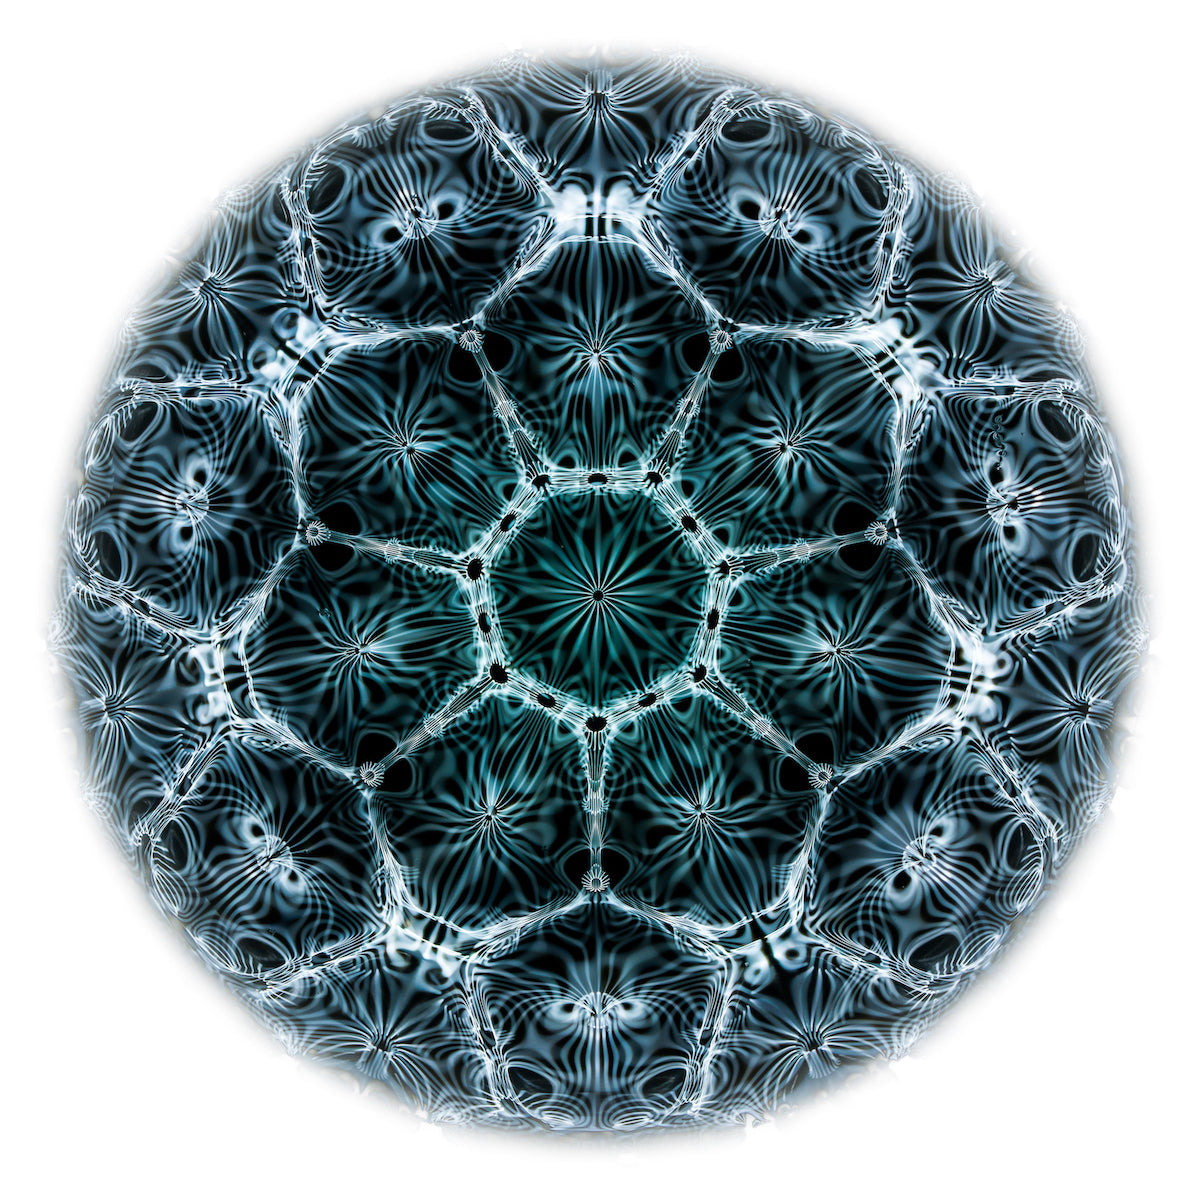 cymatics visible sound photography art print by Jacob Lee Adlington